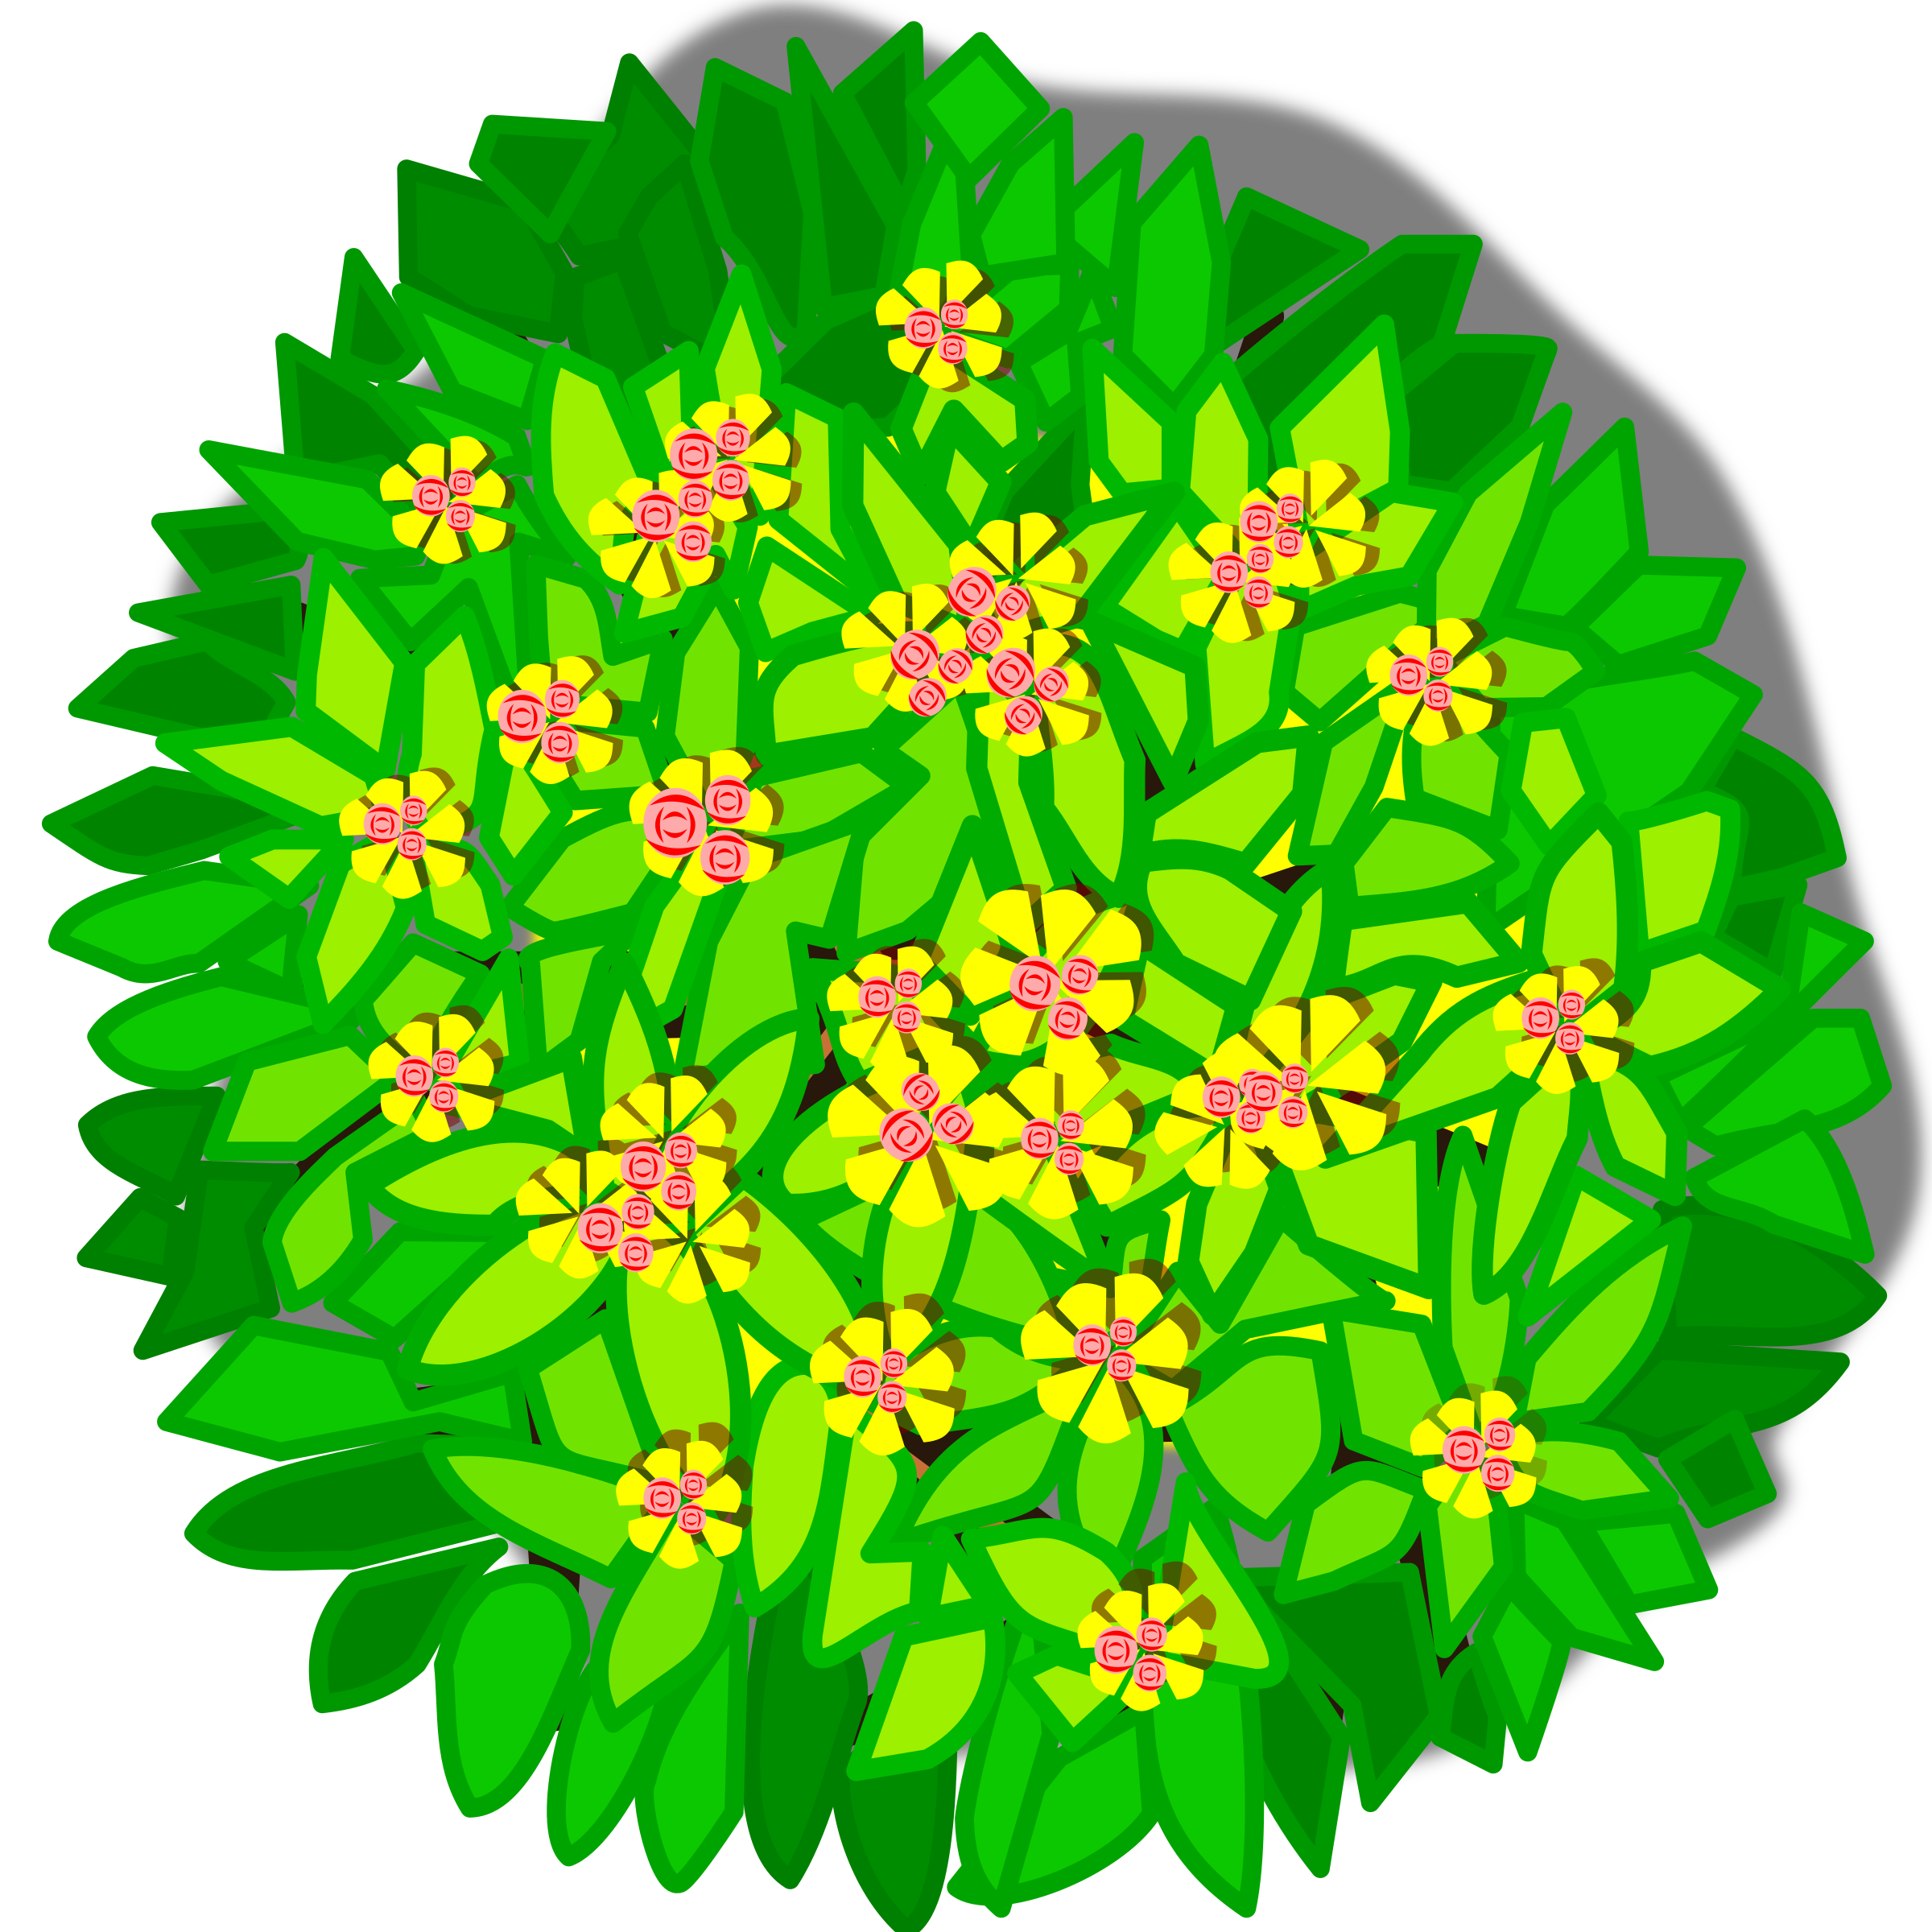 Tree png top view. Clipart big image